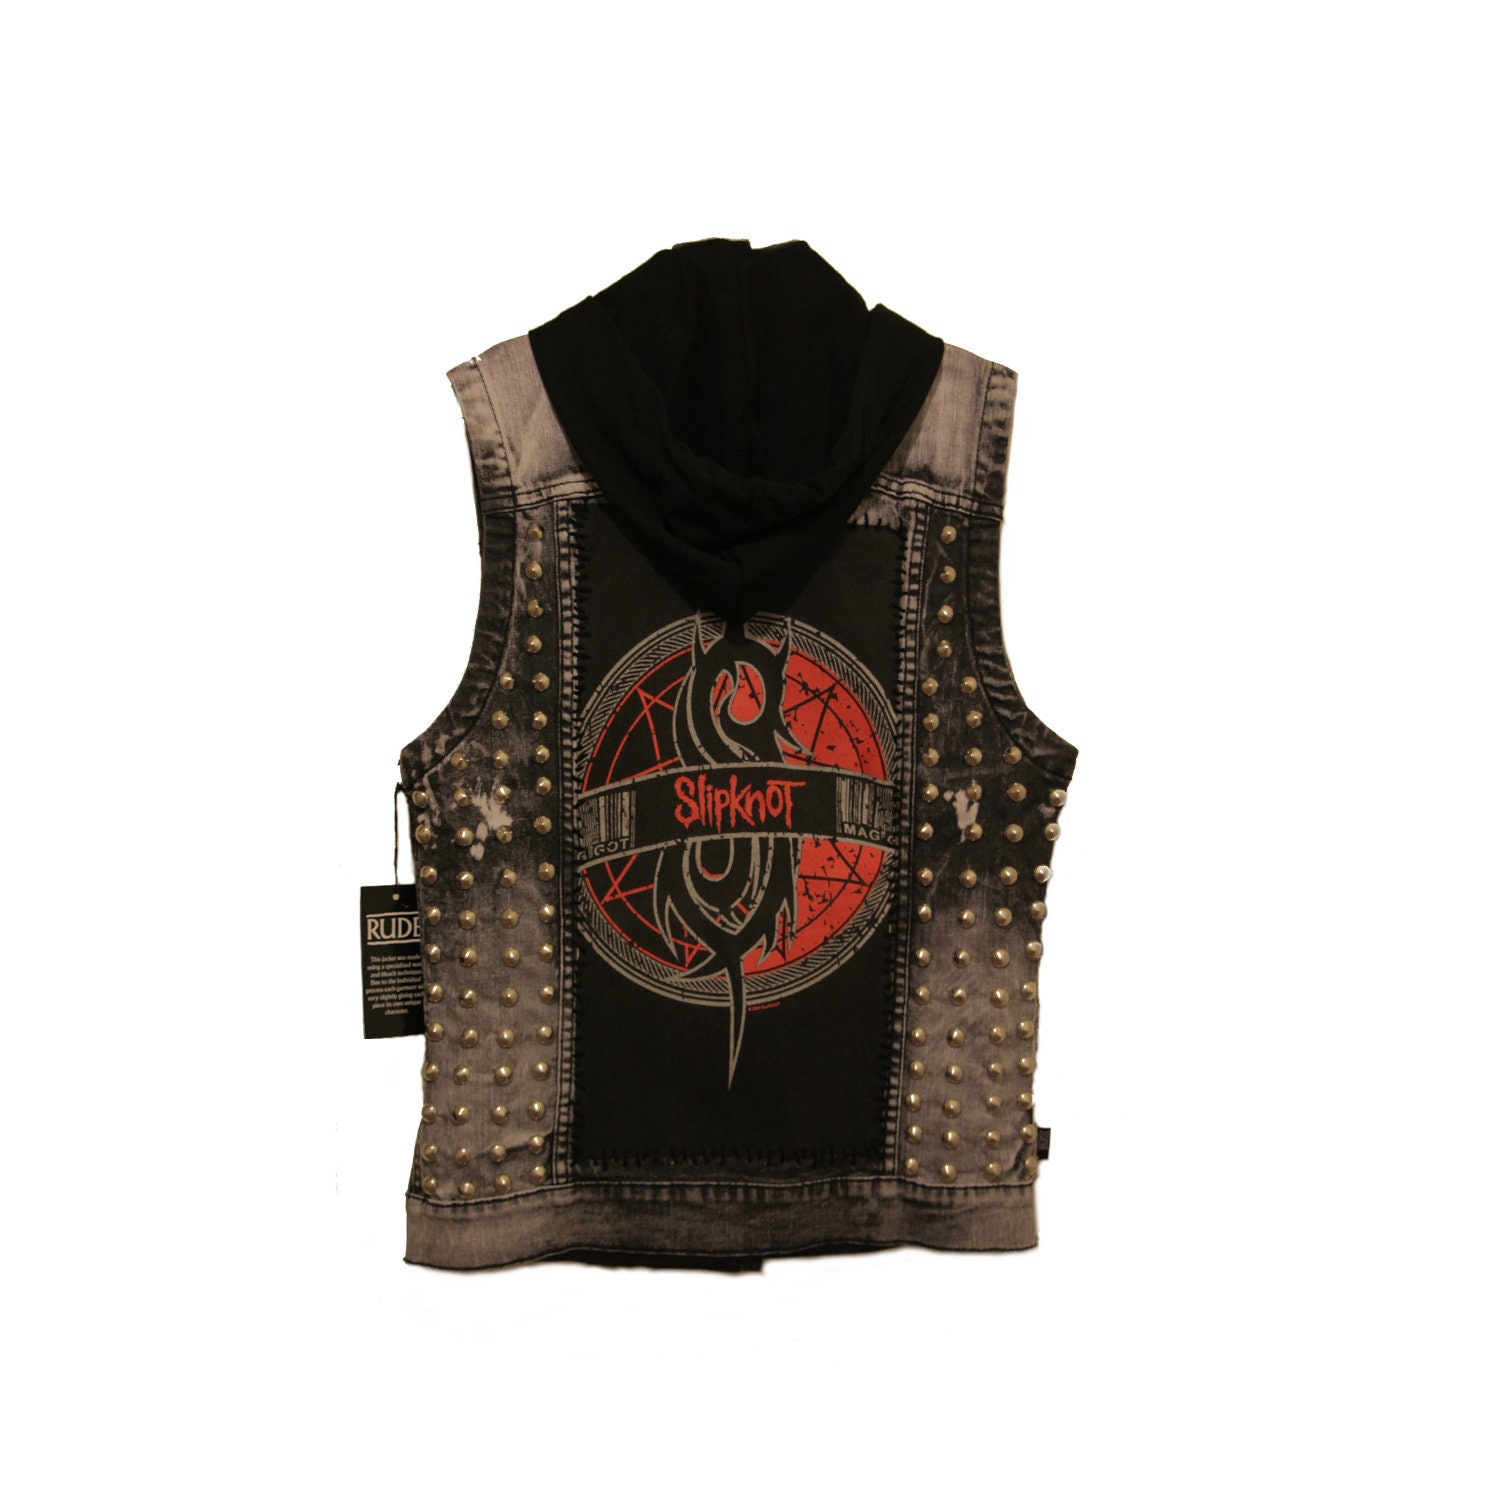 Womens slipknot vest m&g investments placement salary